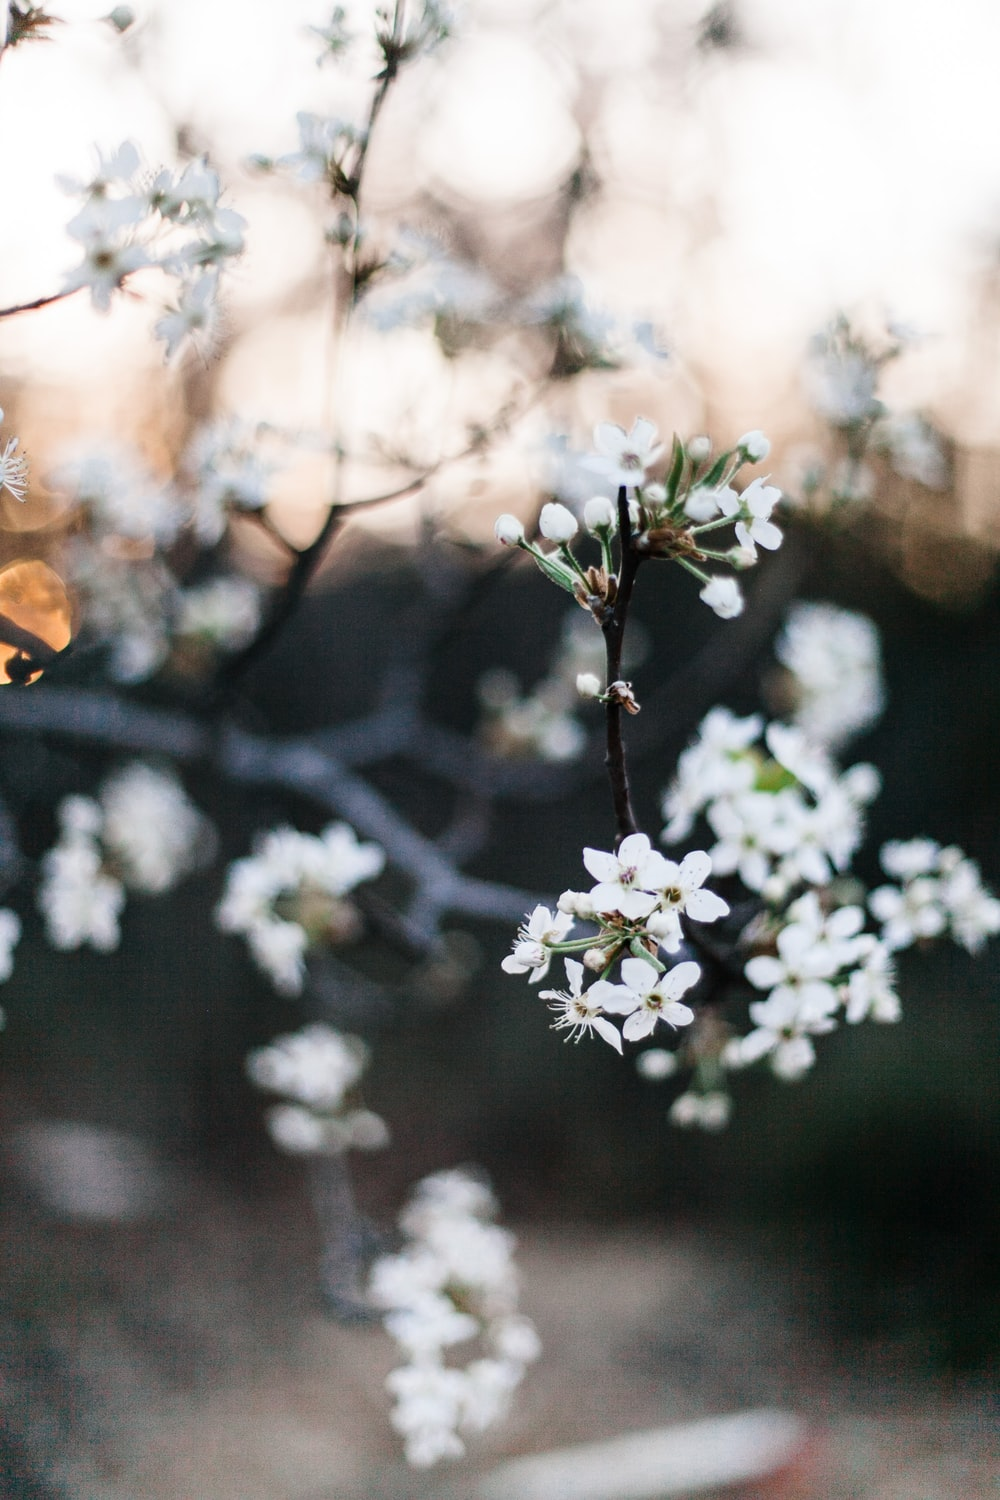 Blossom Tree White Flower And Outdoors Hd Photo By Heather Mount